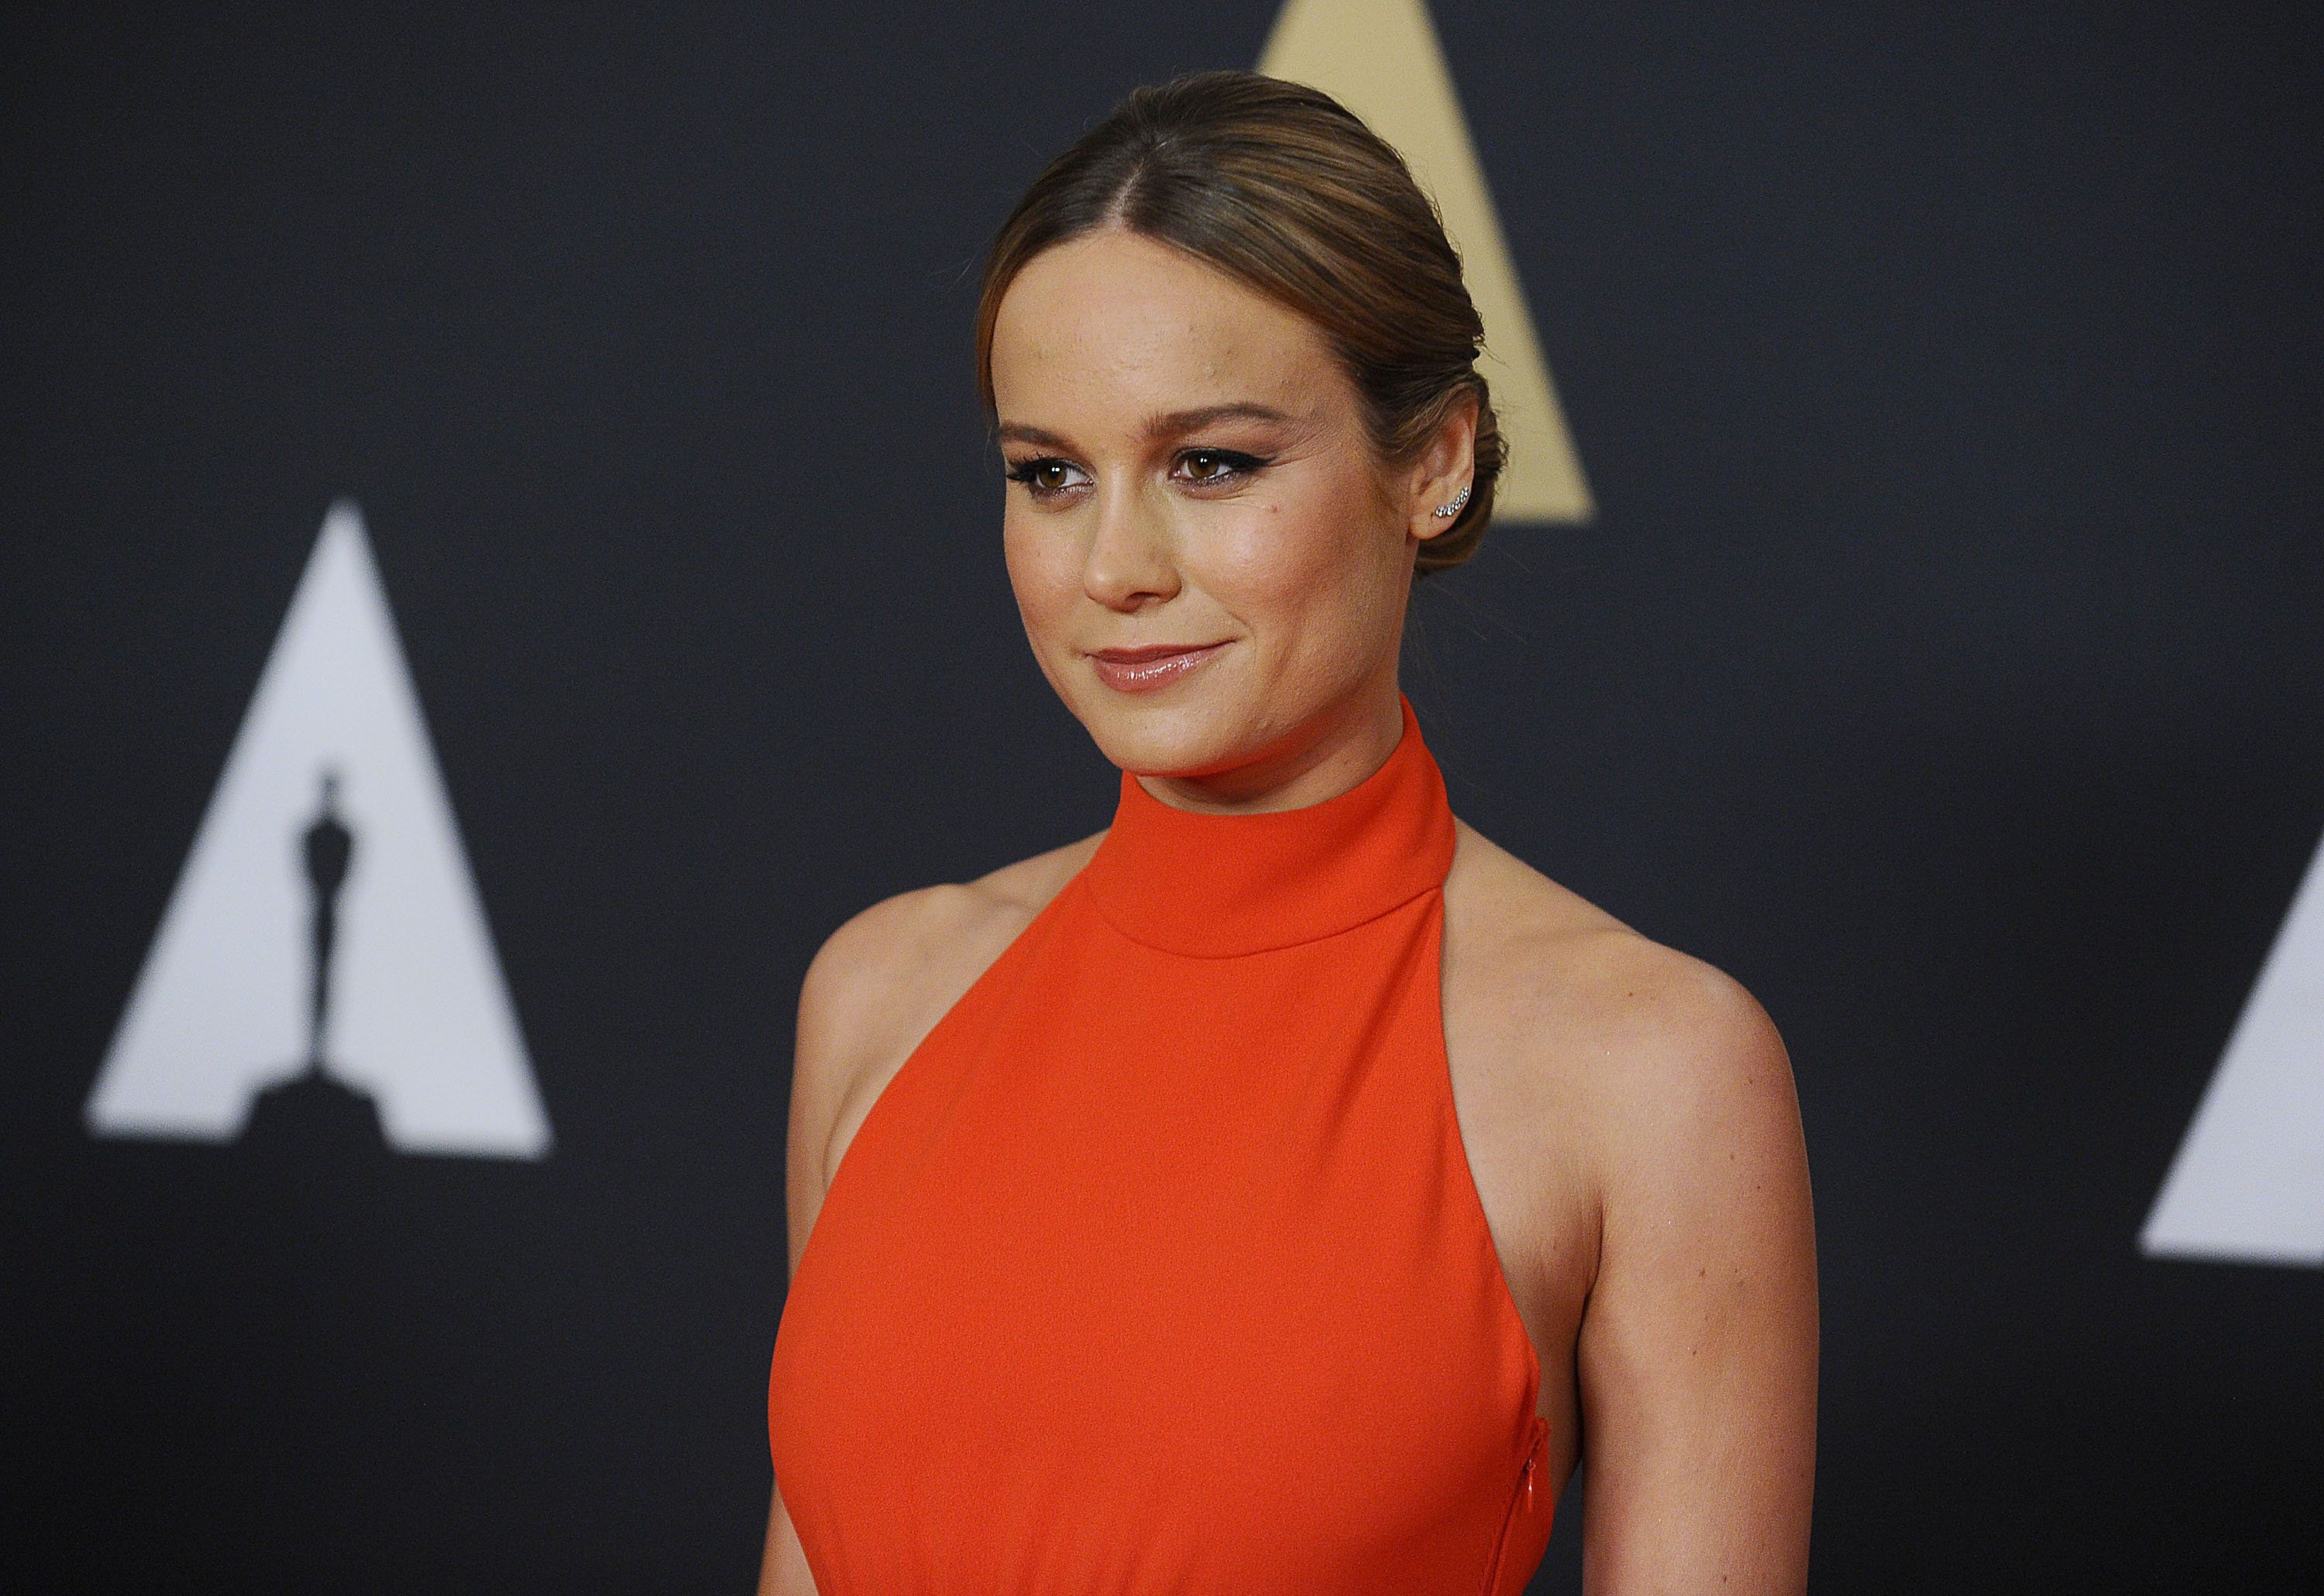 HOLLYWOOD, CA - NOVEMBER 14:  Actress Brie Larson attends the 7th annual Governors Awards at The Ray Dolby Ballroom at Hollywood & Highland Center on November 14, 2015 in Hollywood, California.  (Photo by Jason LaVeris/FilmMagic)